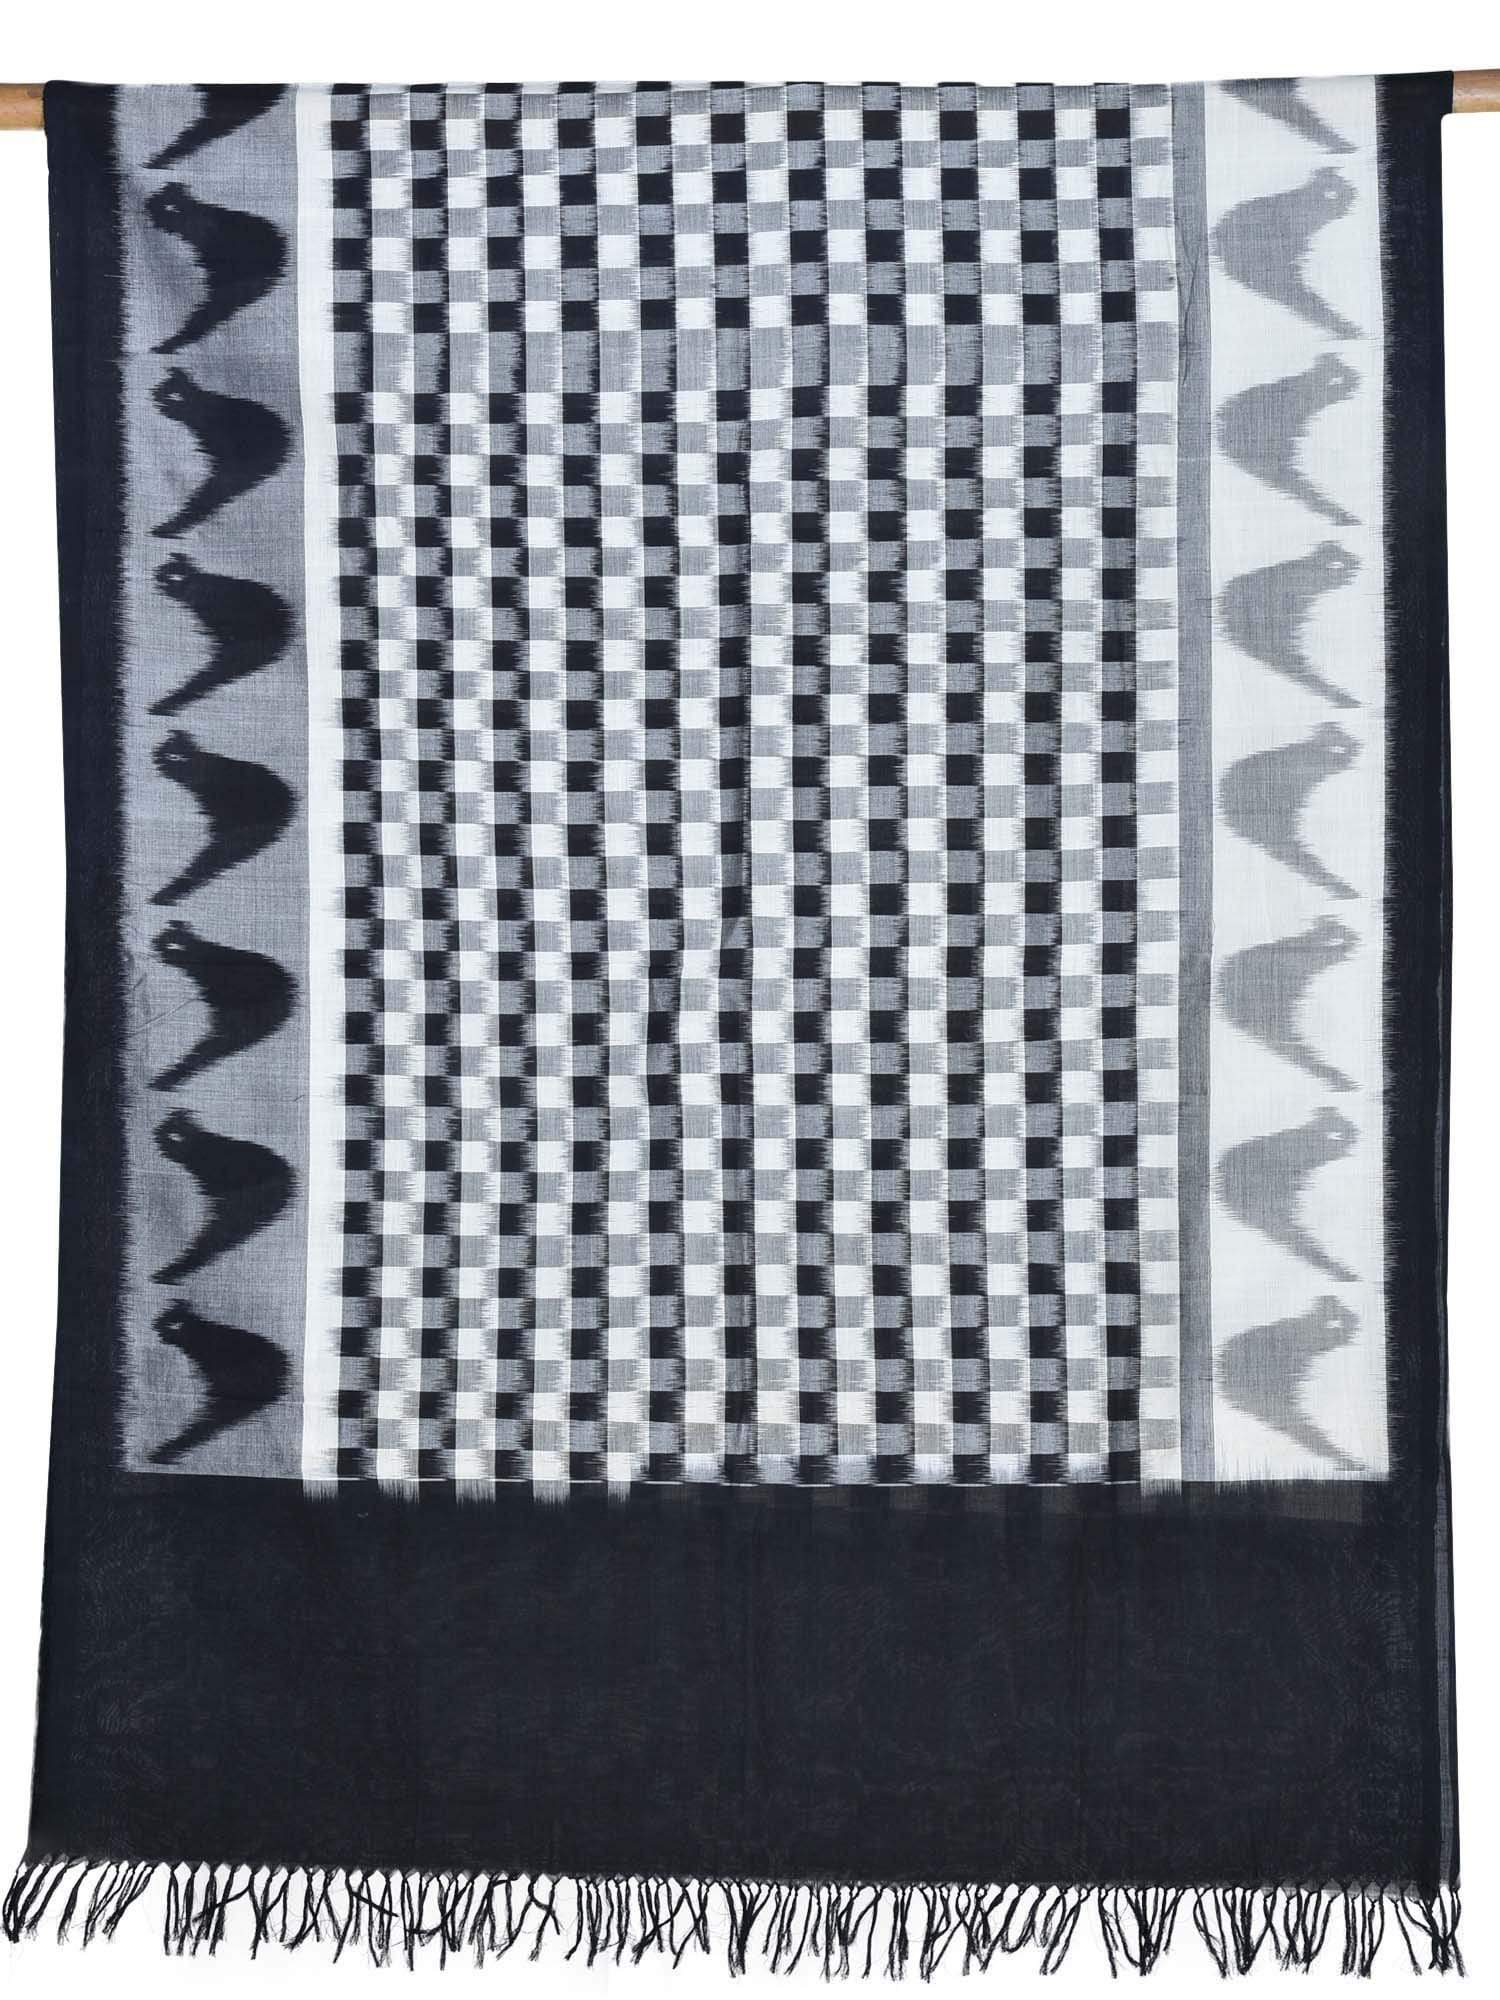 Black and White Pochampally Ikat Cotton Handloom Dupatta with Checks Design ds1697